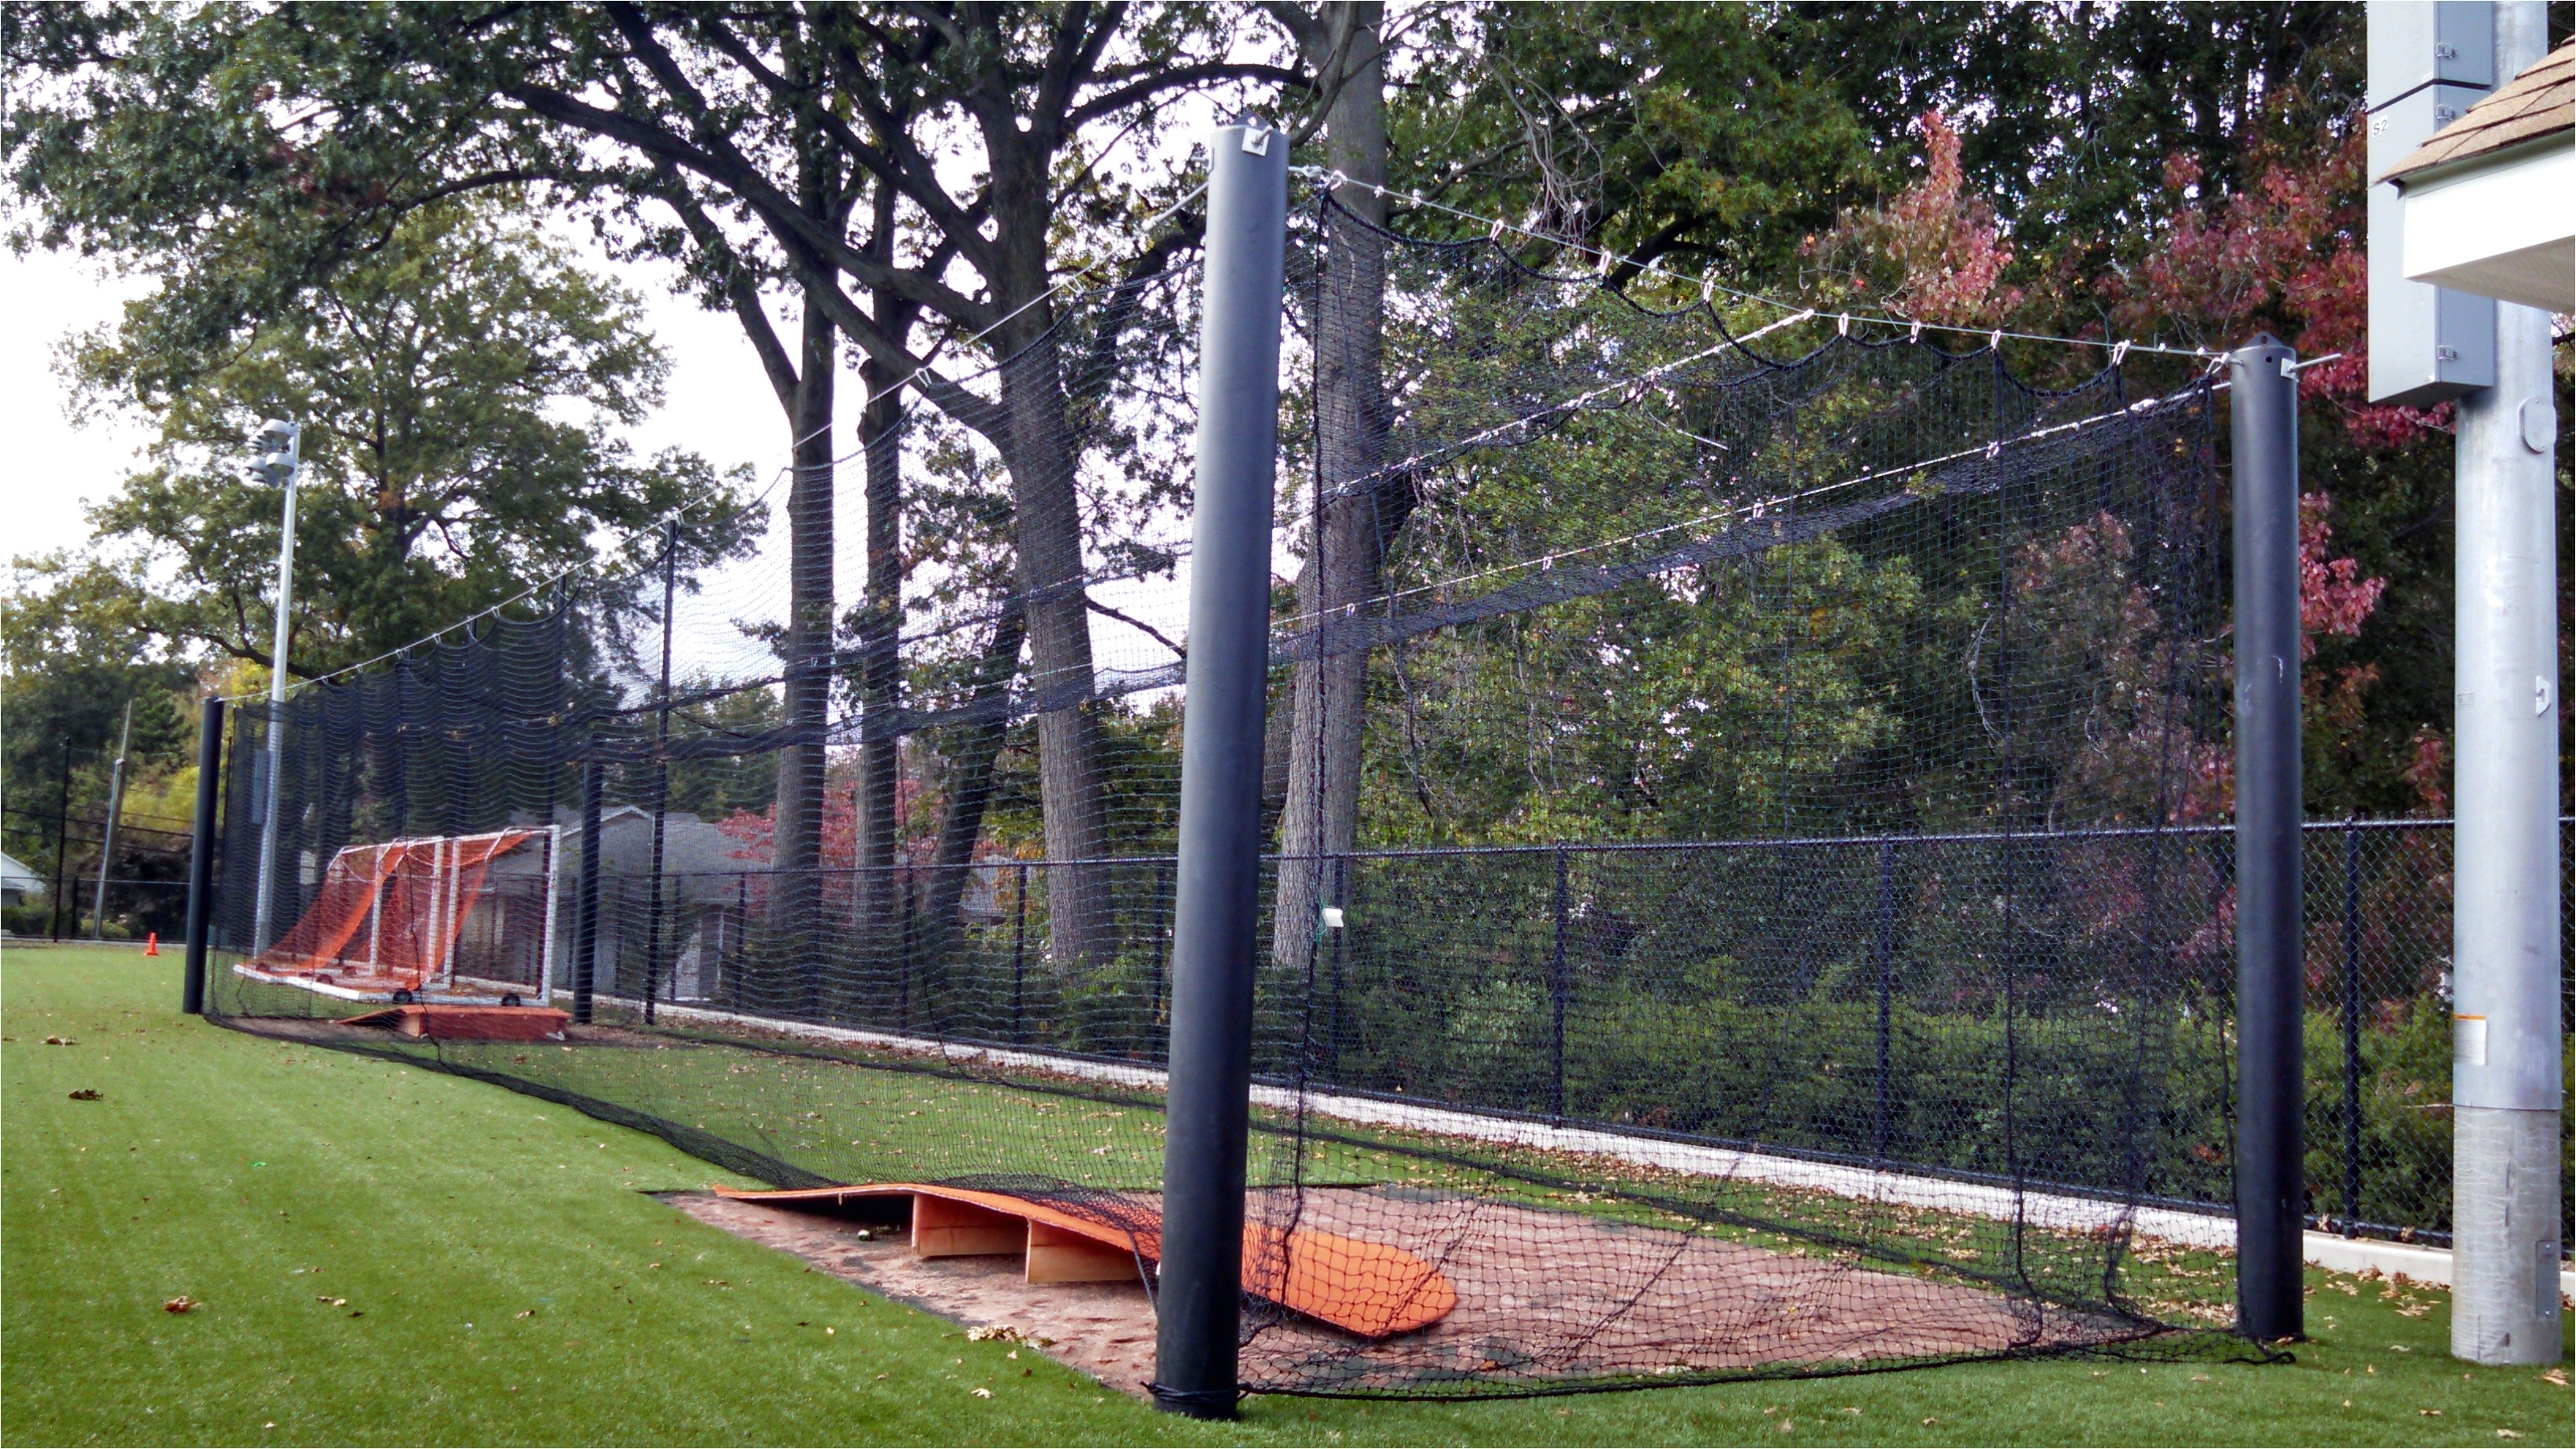 Home Batting Cage Plans Baseball Cages Pictures to Pin On Pinterest Pinsdaddy